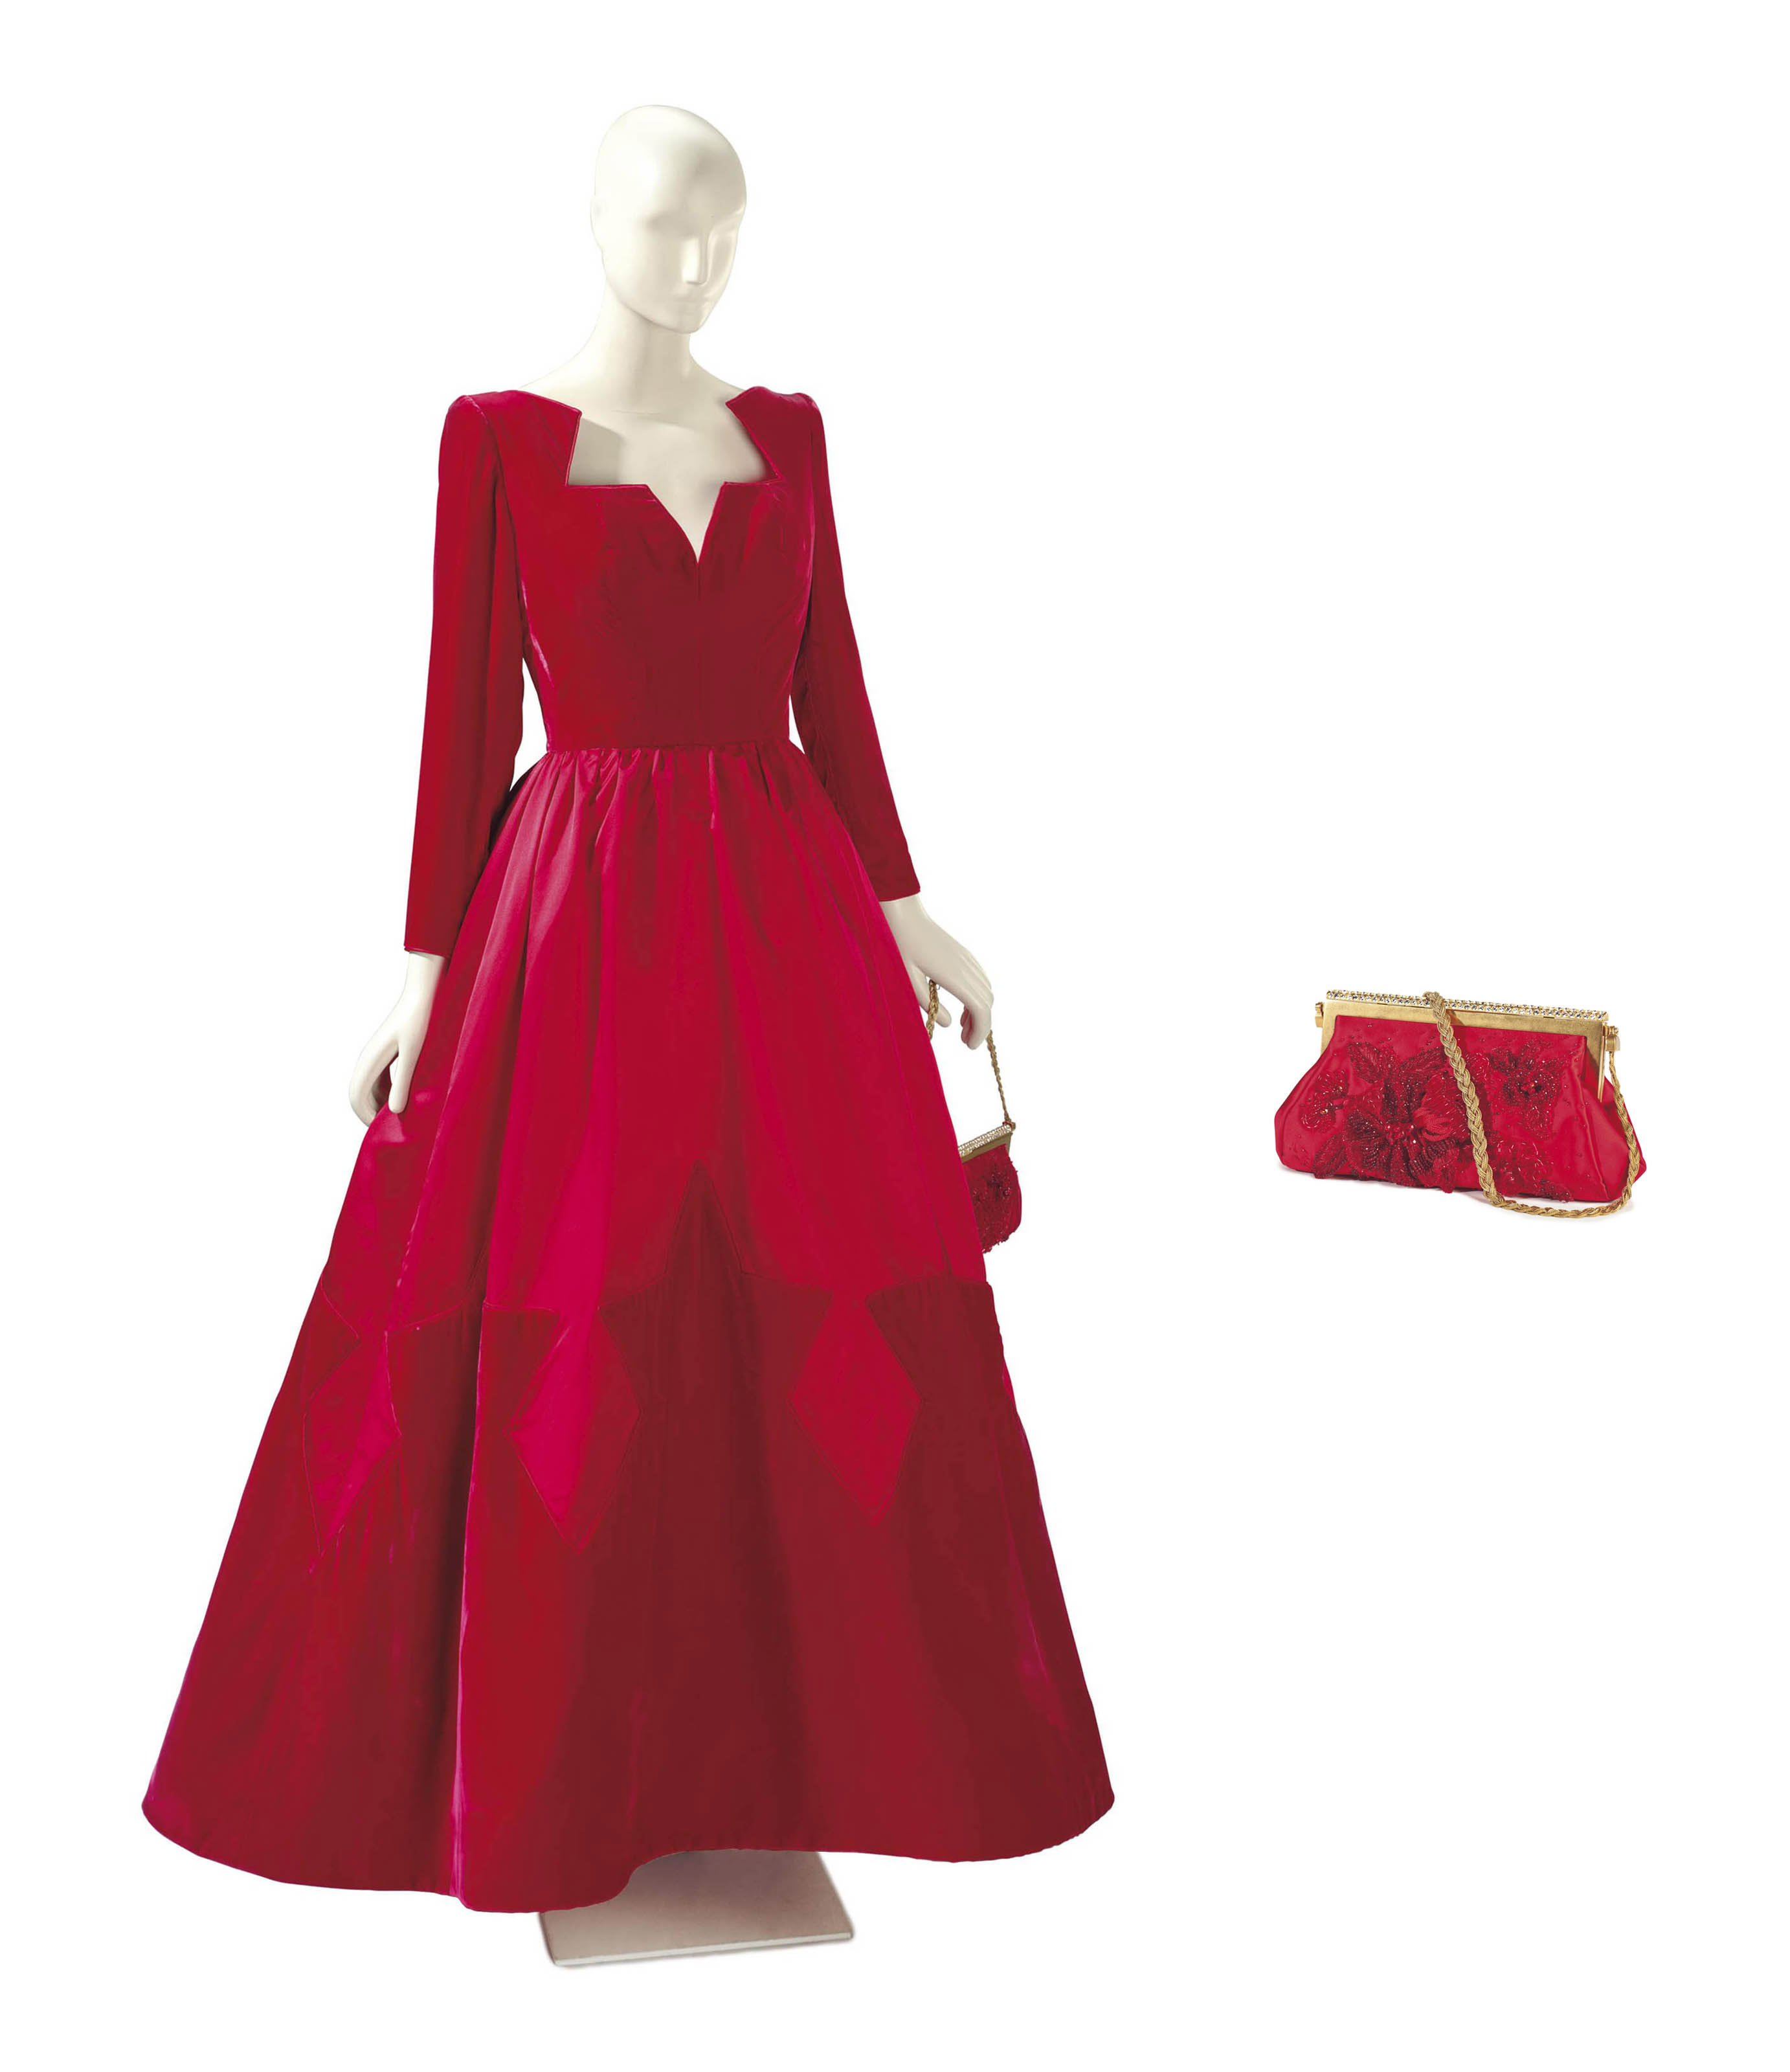 A VALENTINO RED VELVET AND SATIN BALL GOWN WITH SCARLET AND BEADED ...